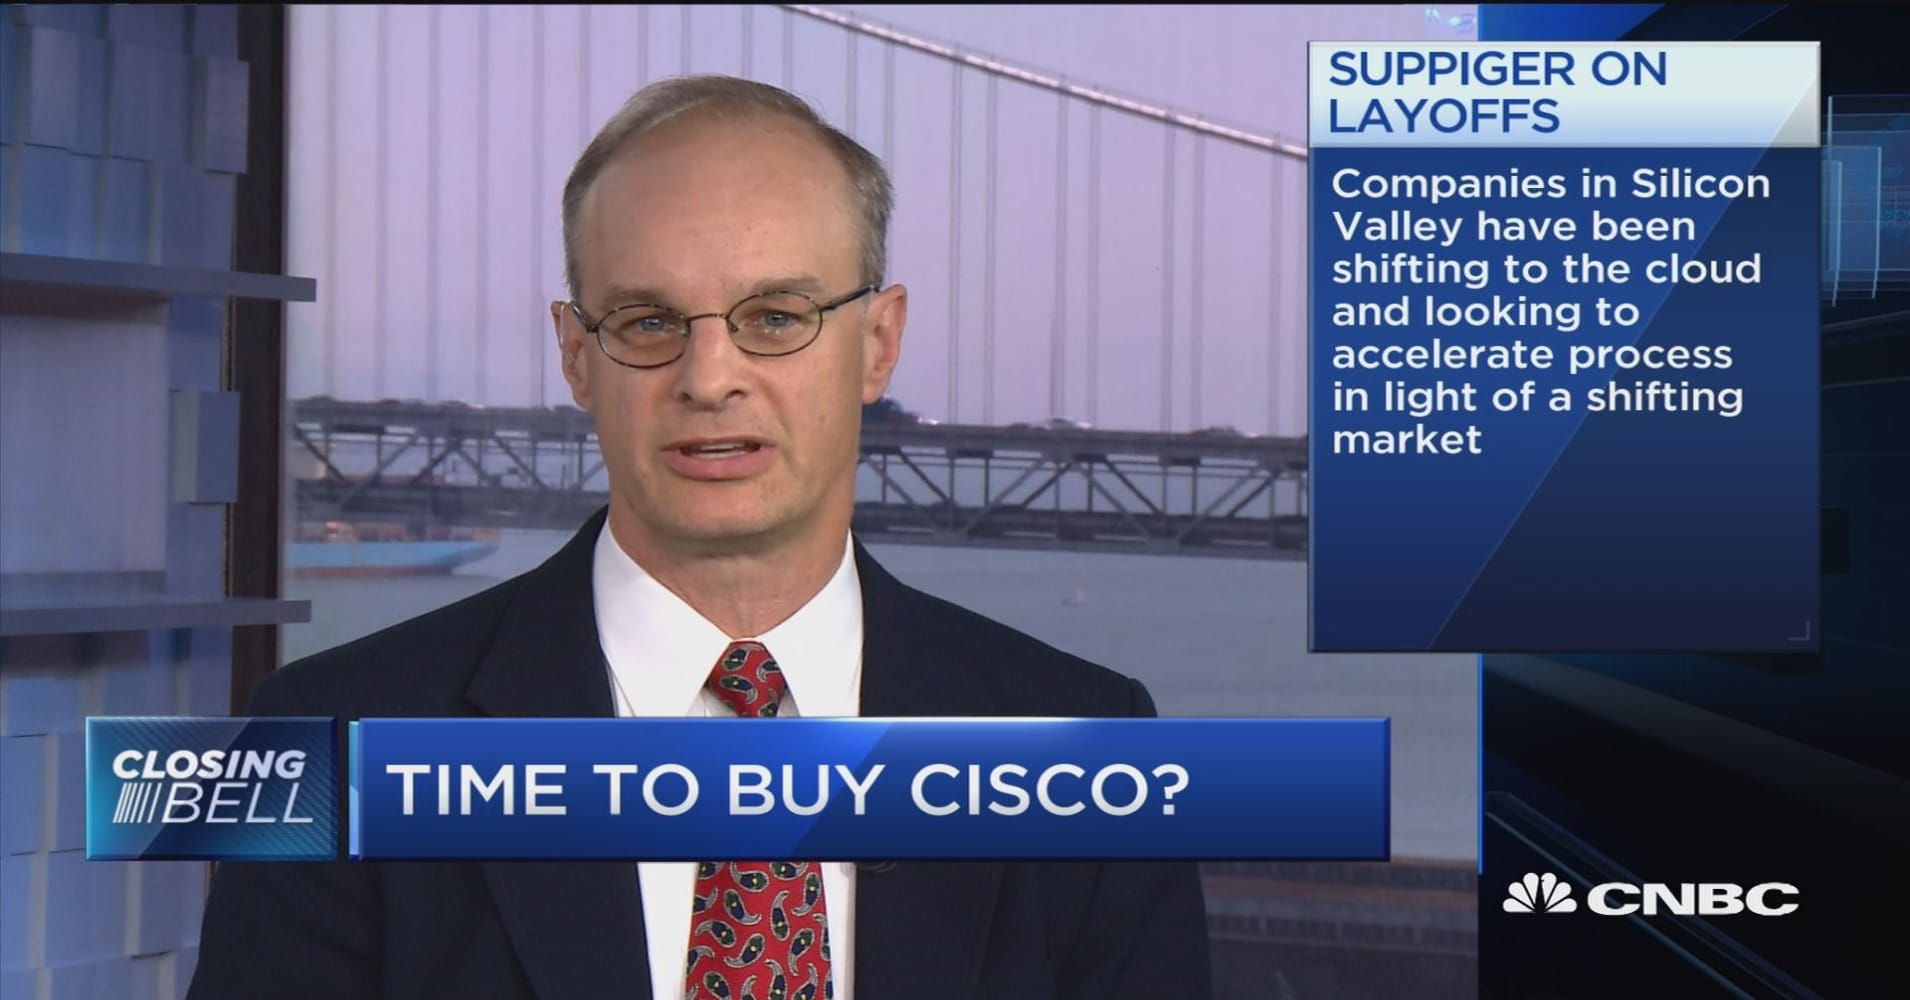 Time to buy Cisco?